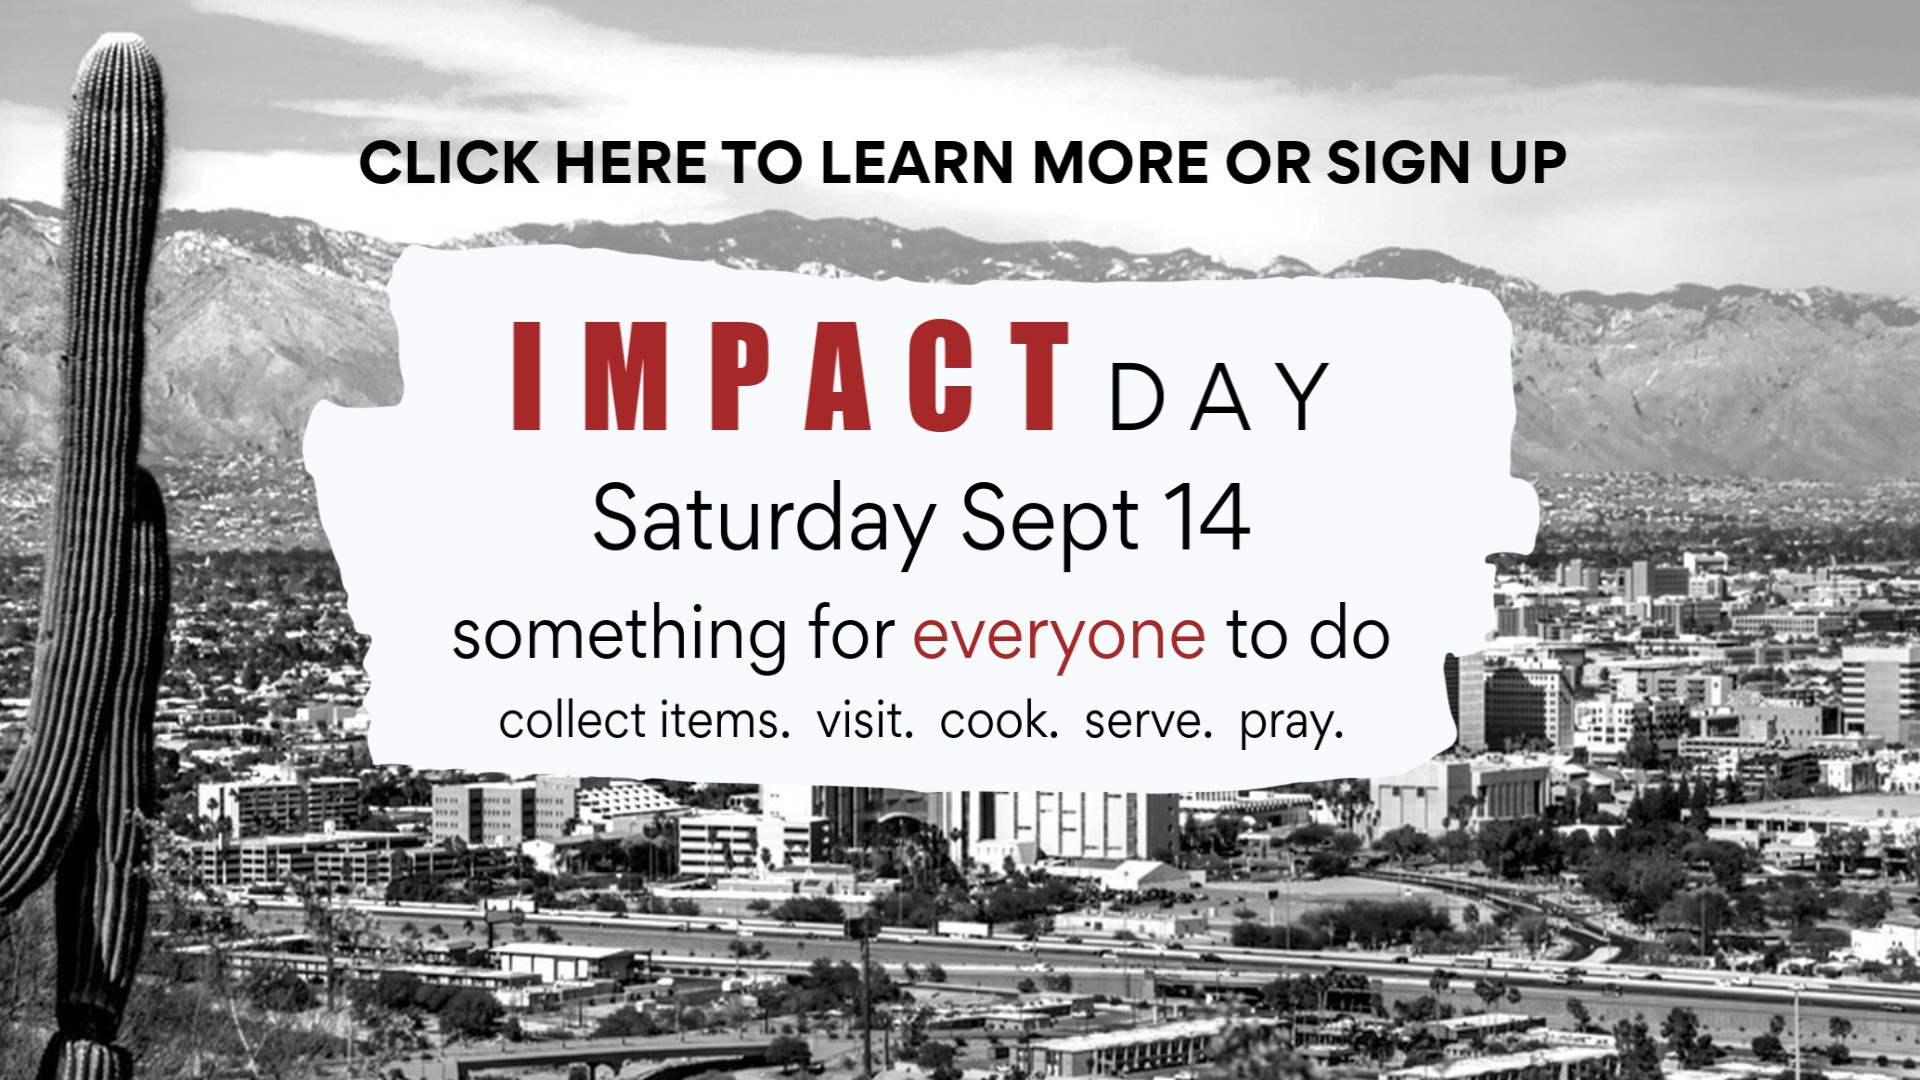 Impact Day Web Slider Click Here For Footprint and Website